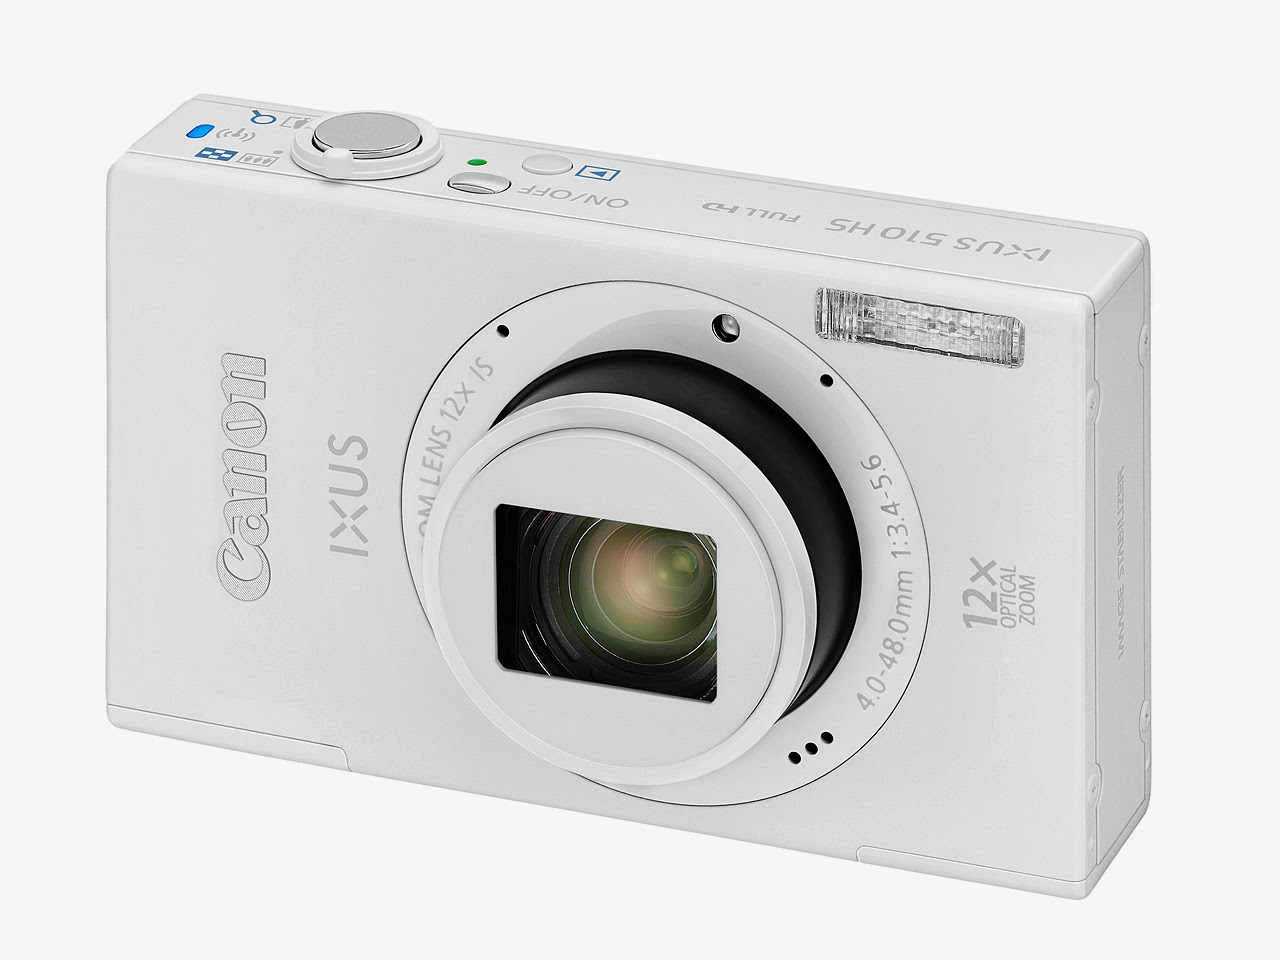 canon ixus 510 review price and full specification technology. Black Bedroom Furniture Sets. Home Design Ideas